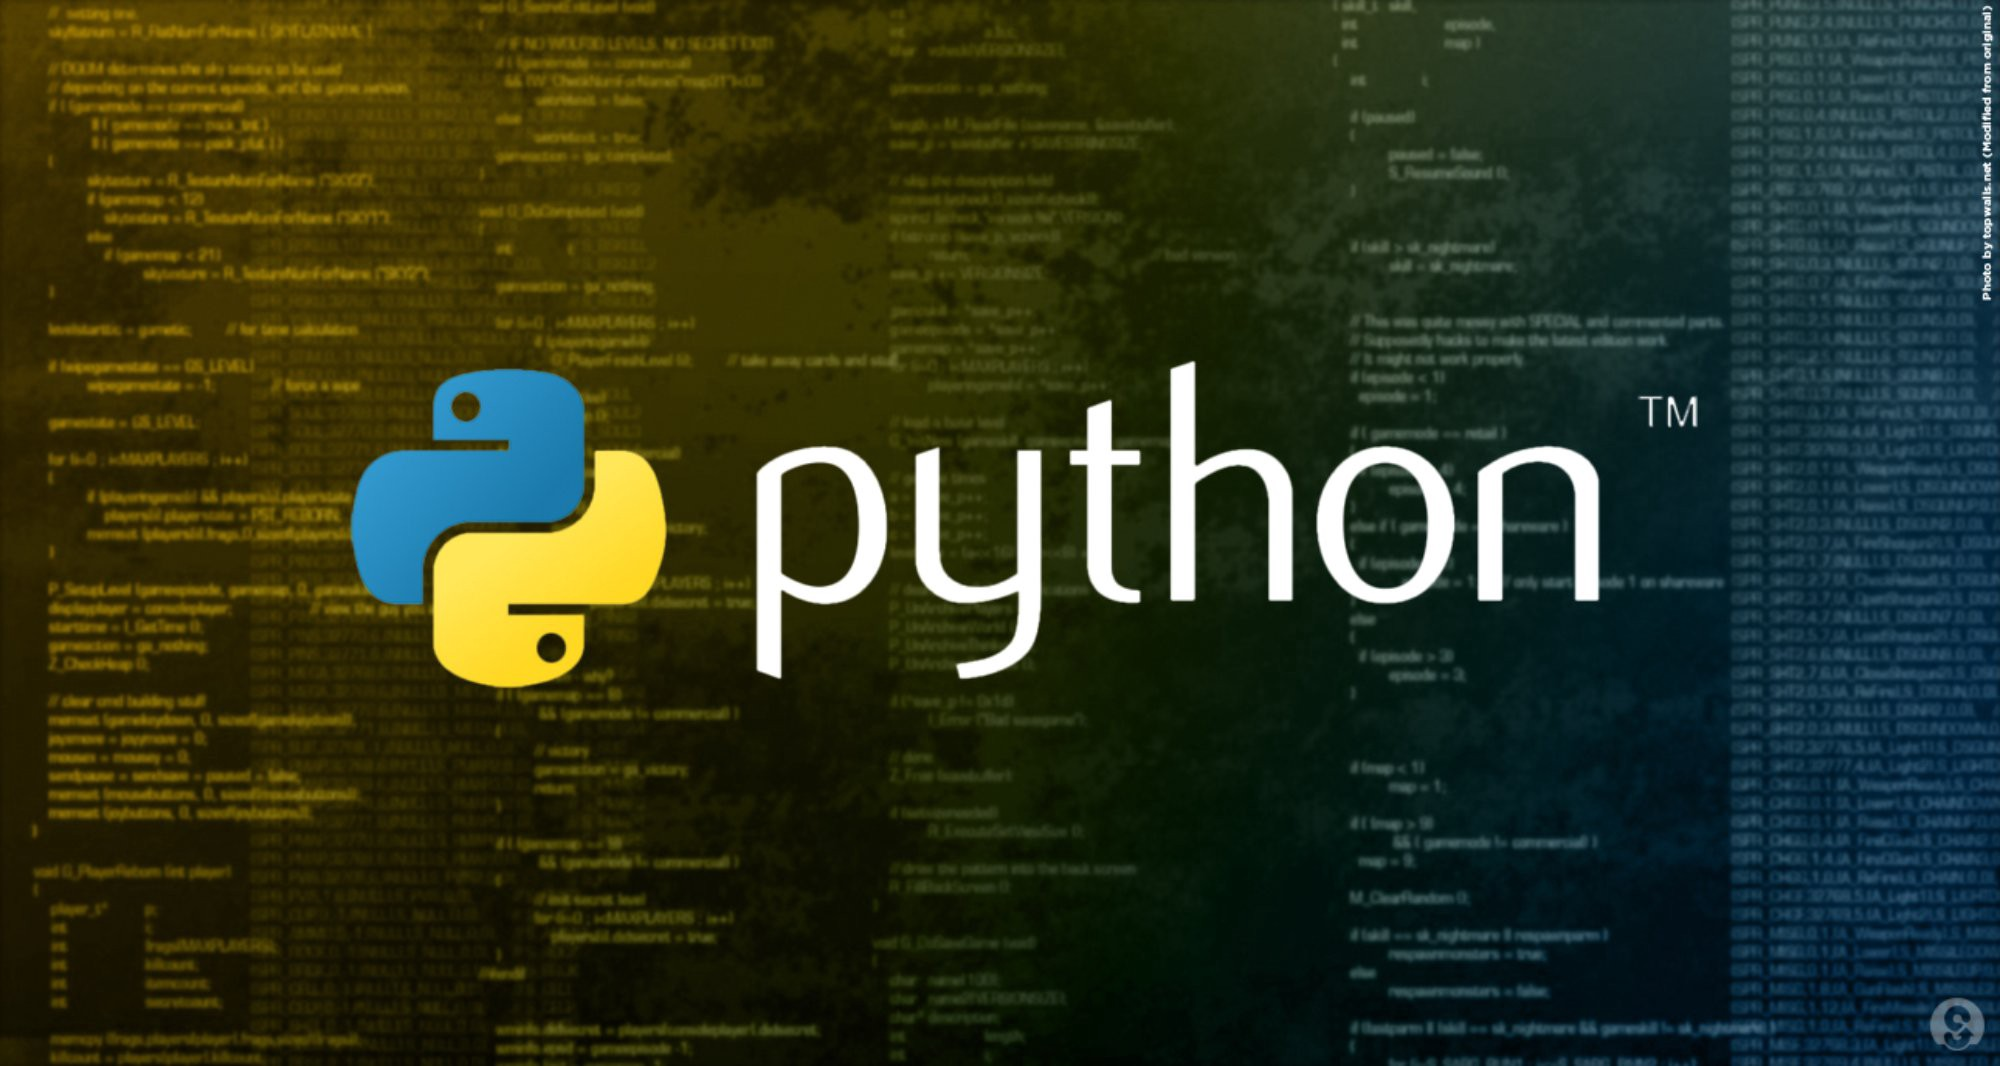 Top Free Online Courses To Learn Python - Quick Code - Medium